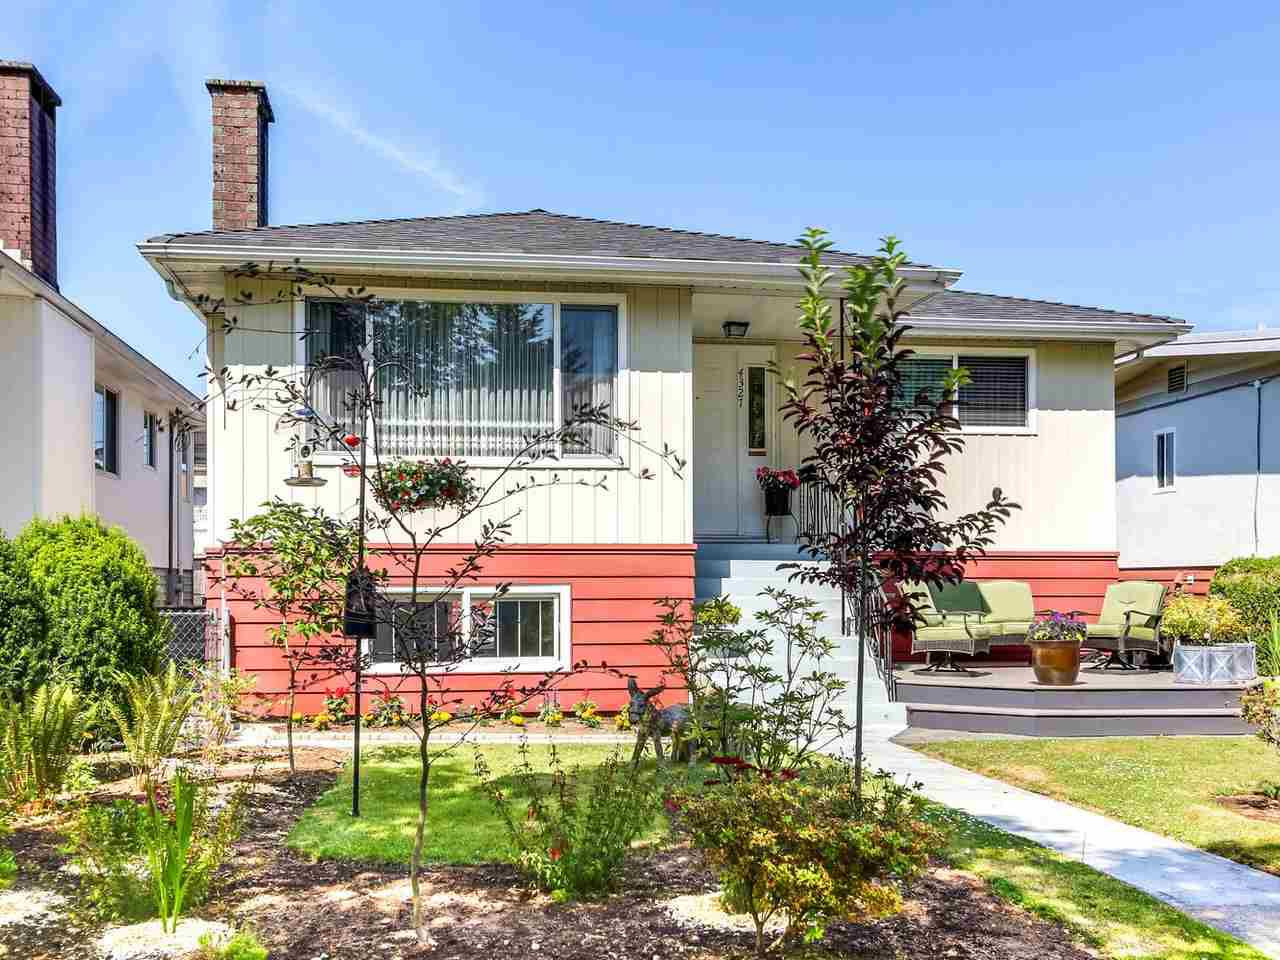 Main Photo: 4327 ATLIN Street in Vancouver: Renfrew Heights House for sale (Vancouver East)  : MLS®# R2183970